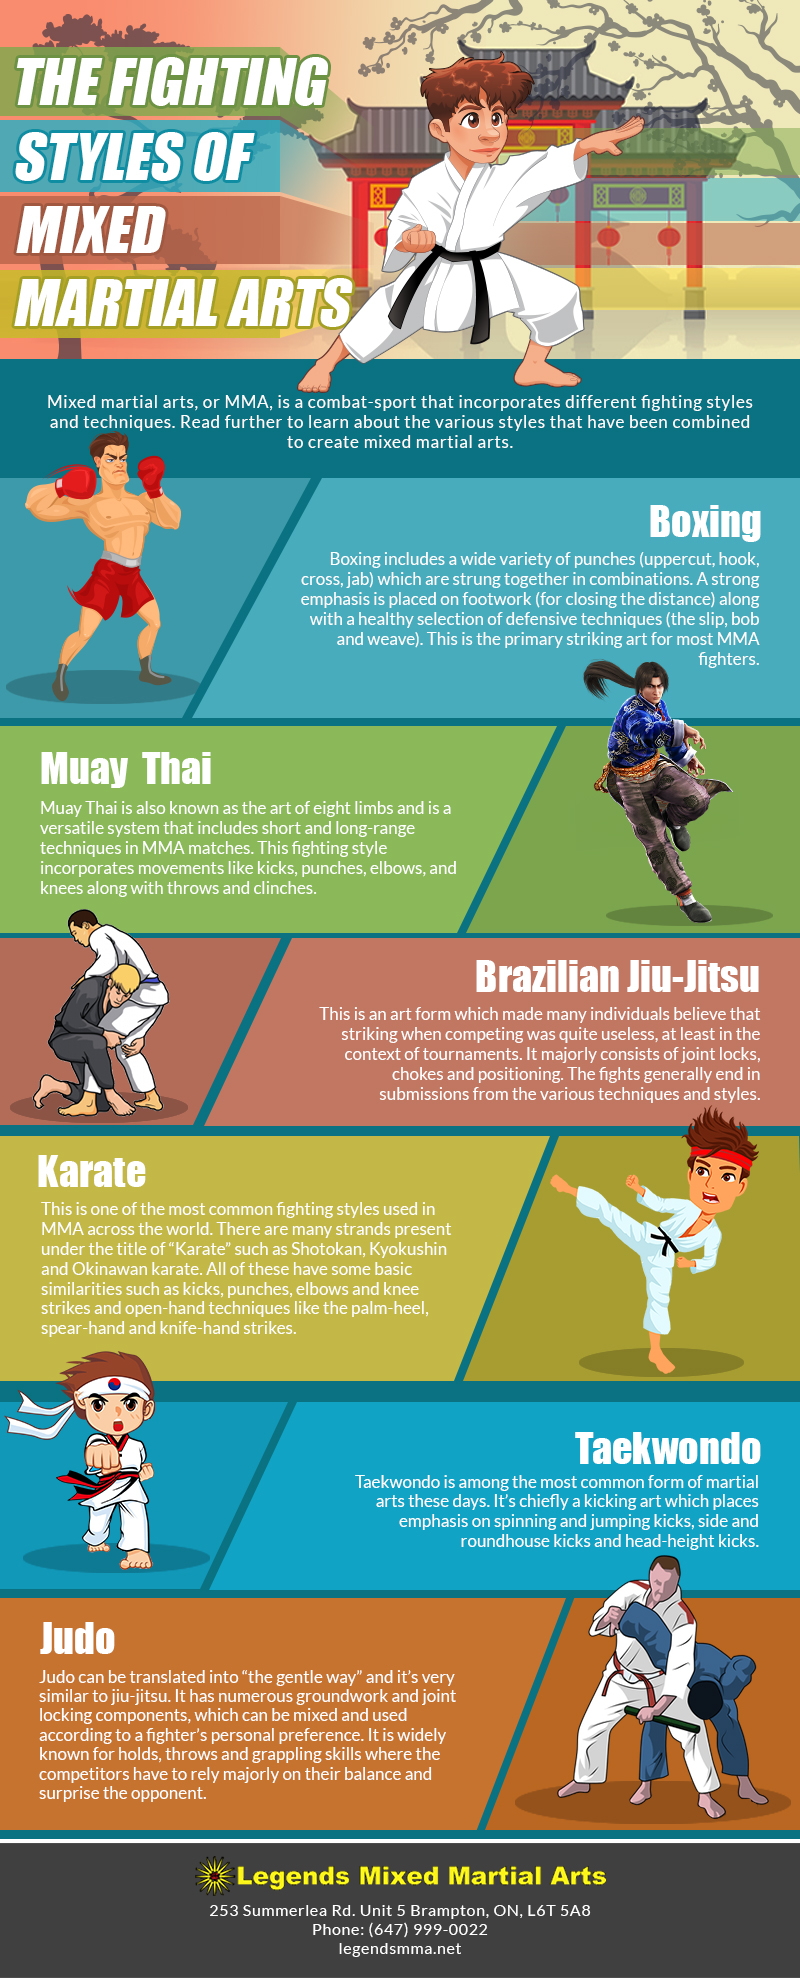 THE FIGHTING STYLES OF MIXED MARTIAL ARTS